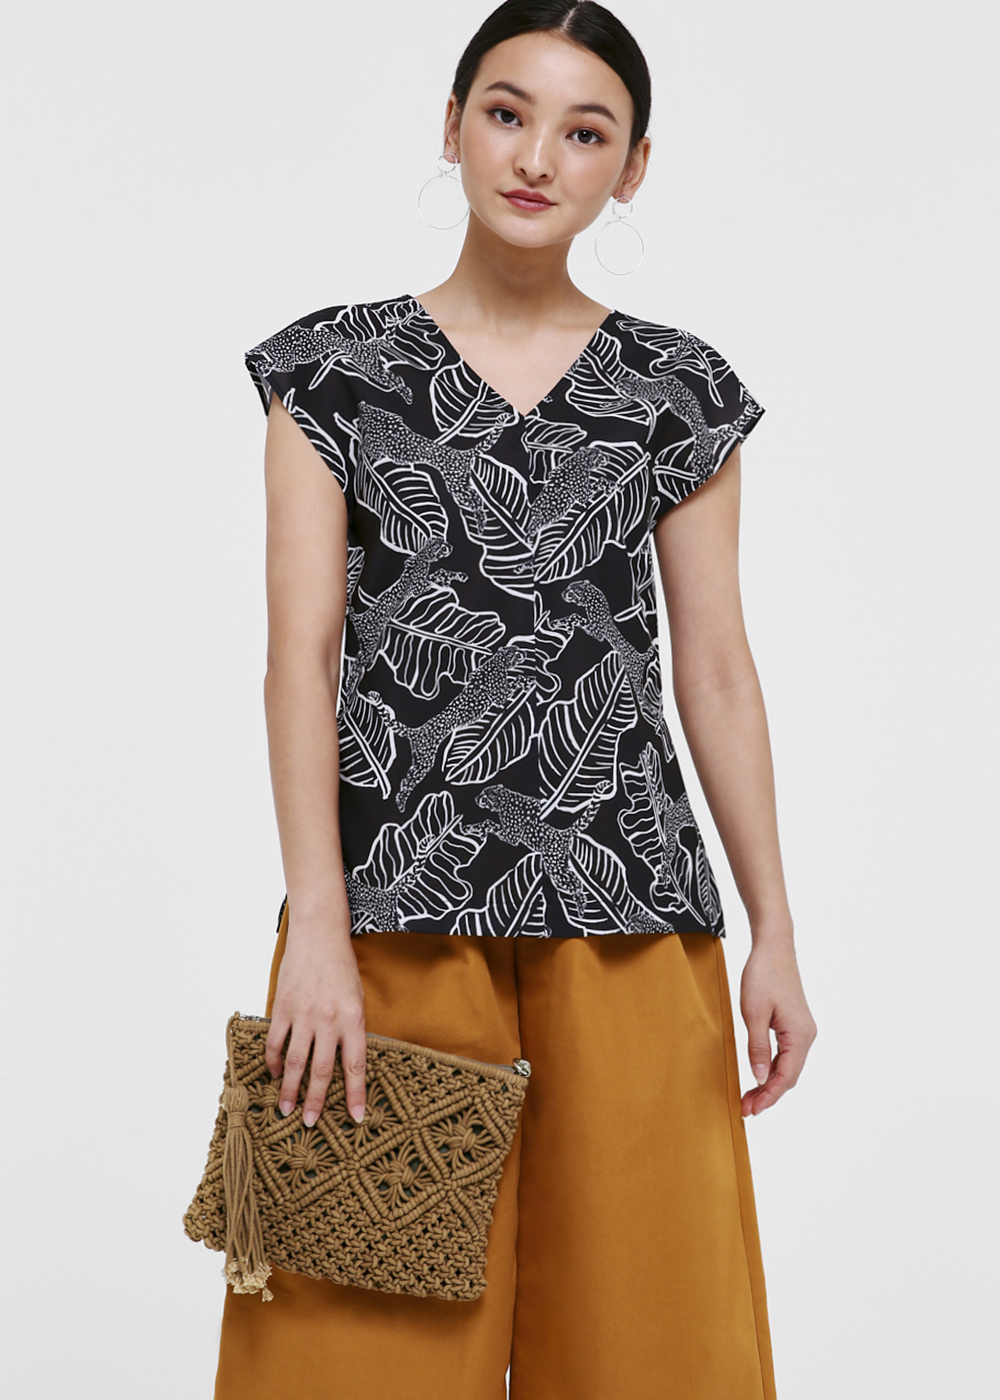 Sandrah V-neck Cap Sleeve Top in Safari Escapade